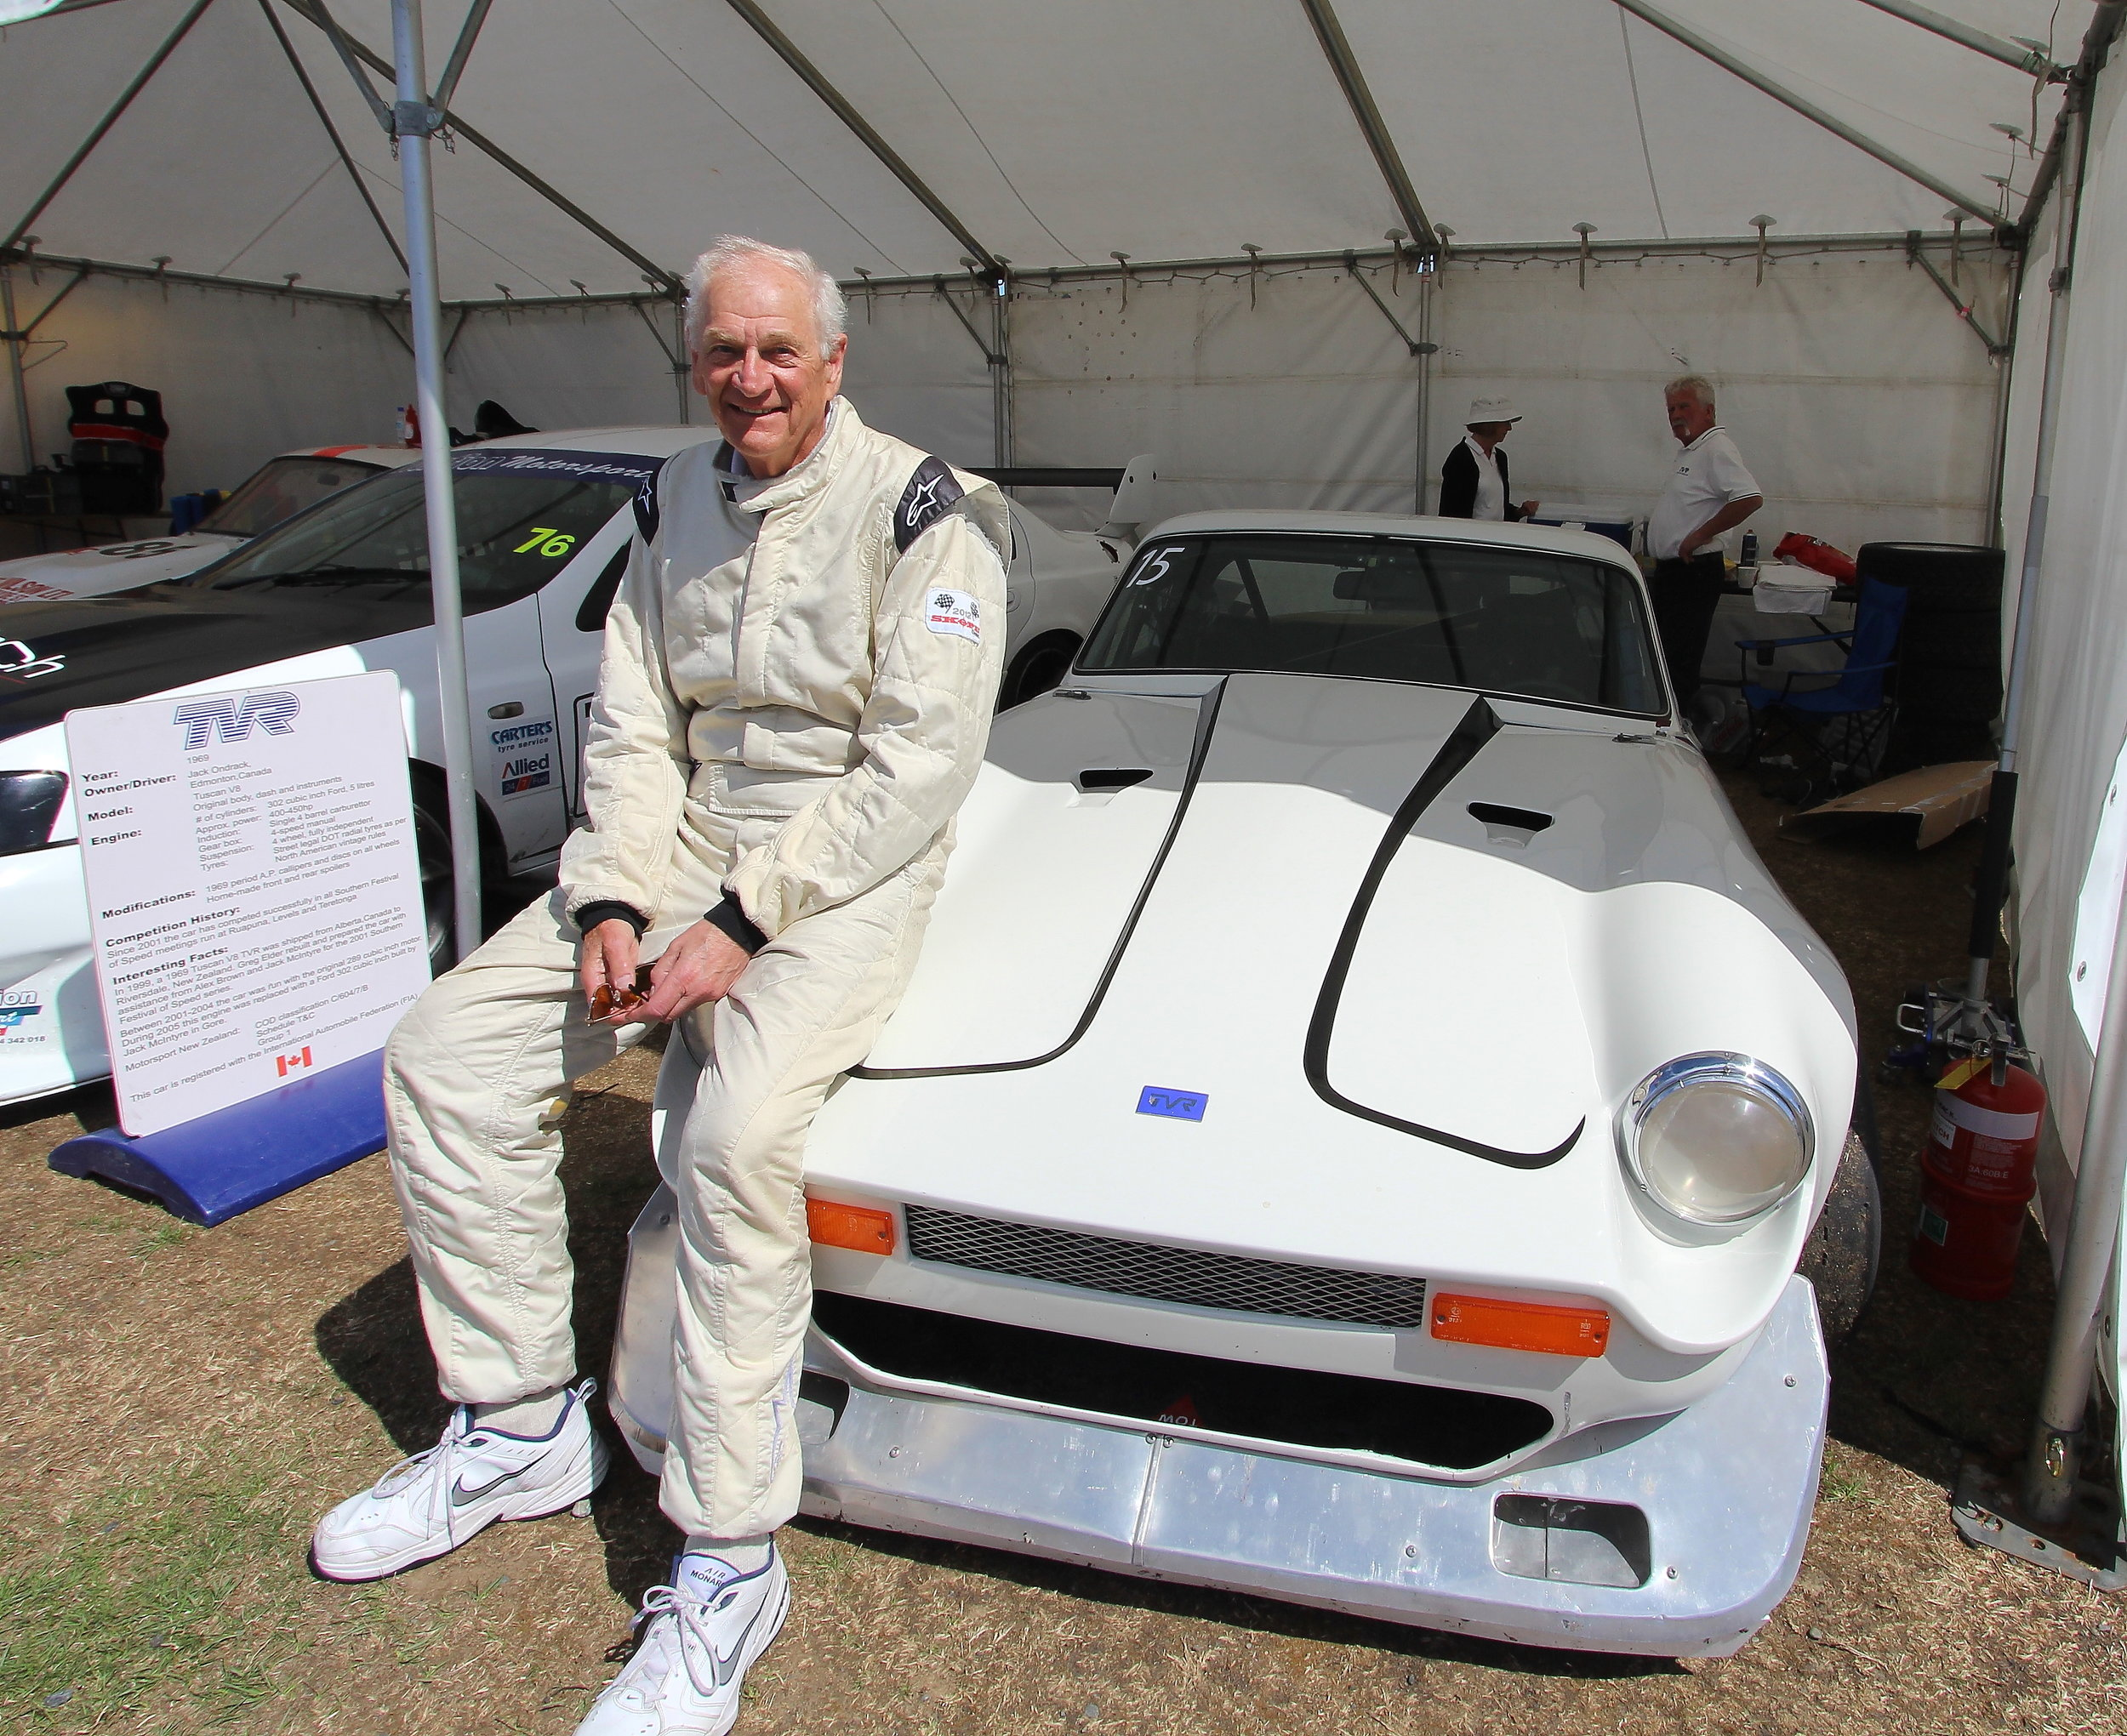 Always fast: Jack Ondrack (Canada) returns every year to pilot his extremely quick TVR